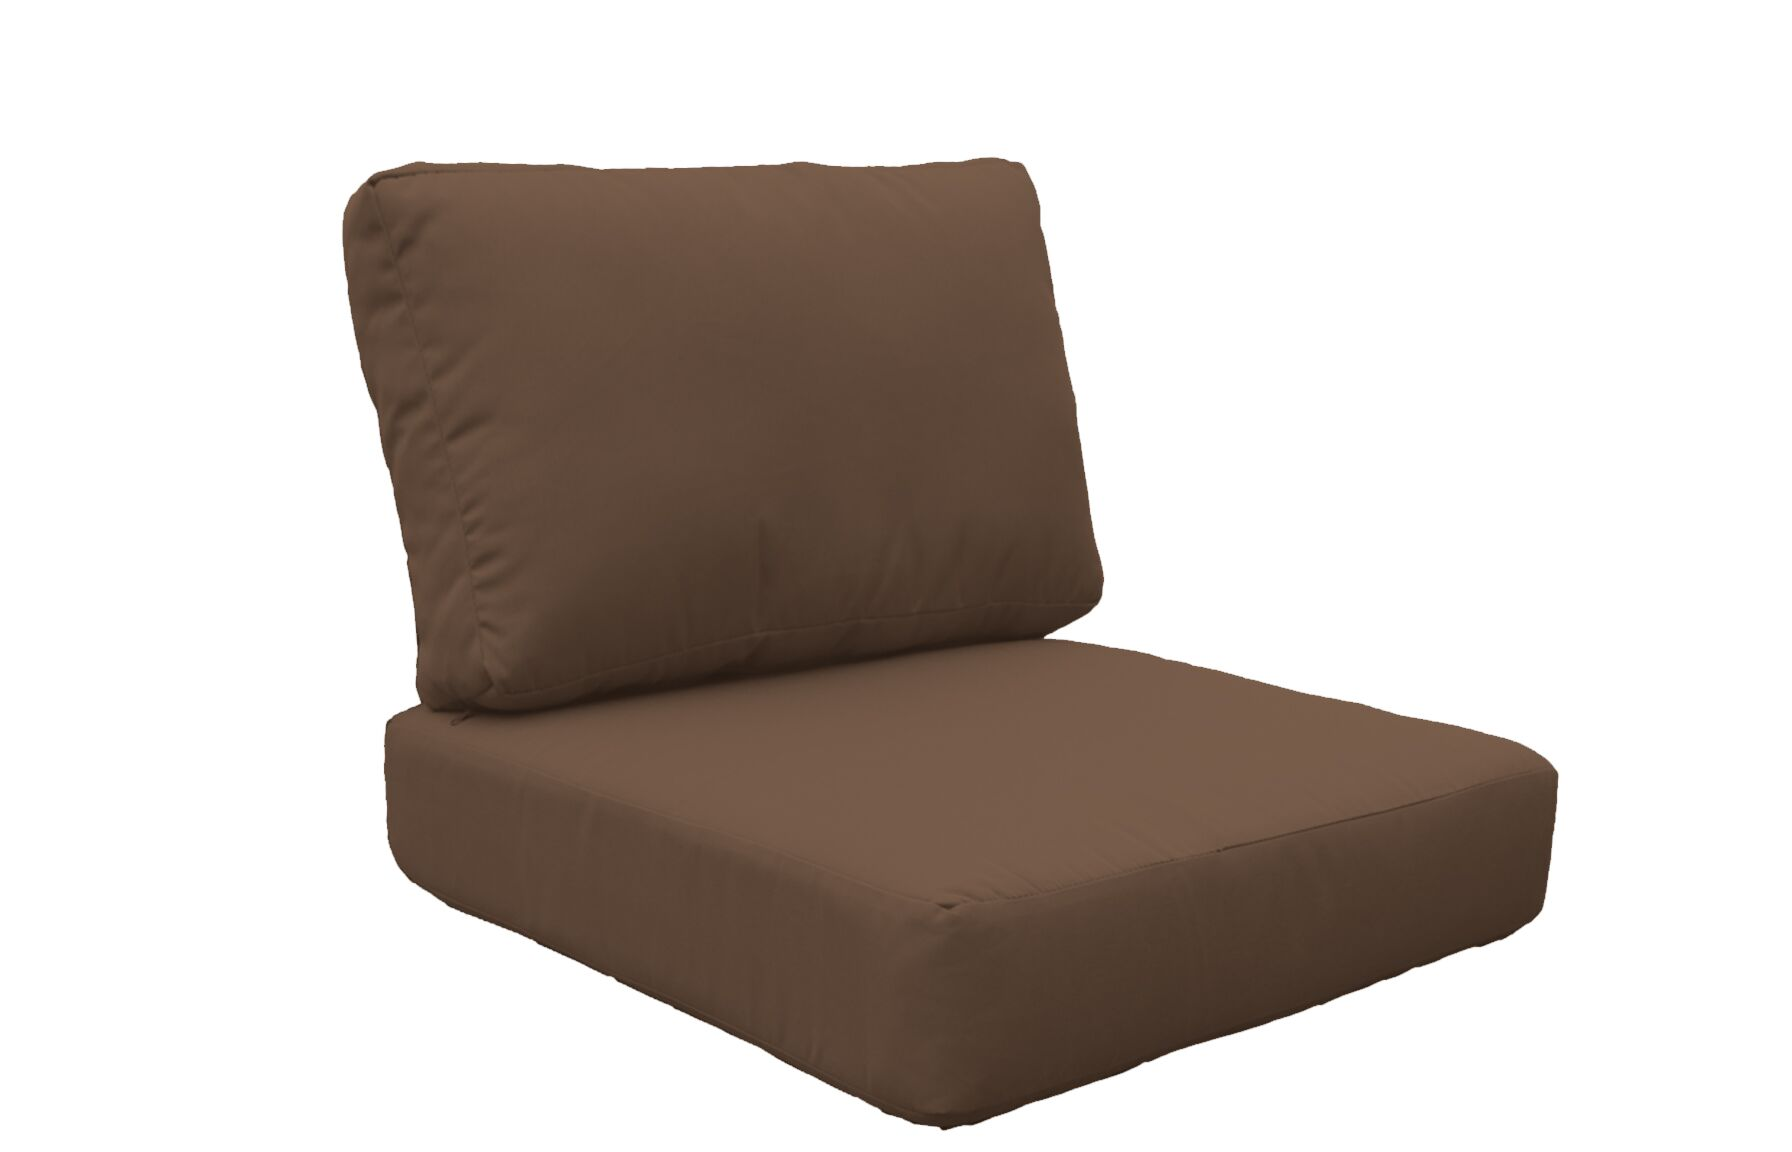 Coast 8 Piece Outdoor�Lounge Chair Cushion Set Fabric: Cocoa